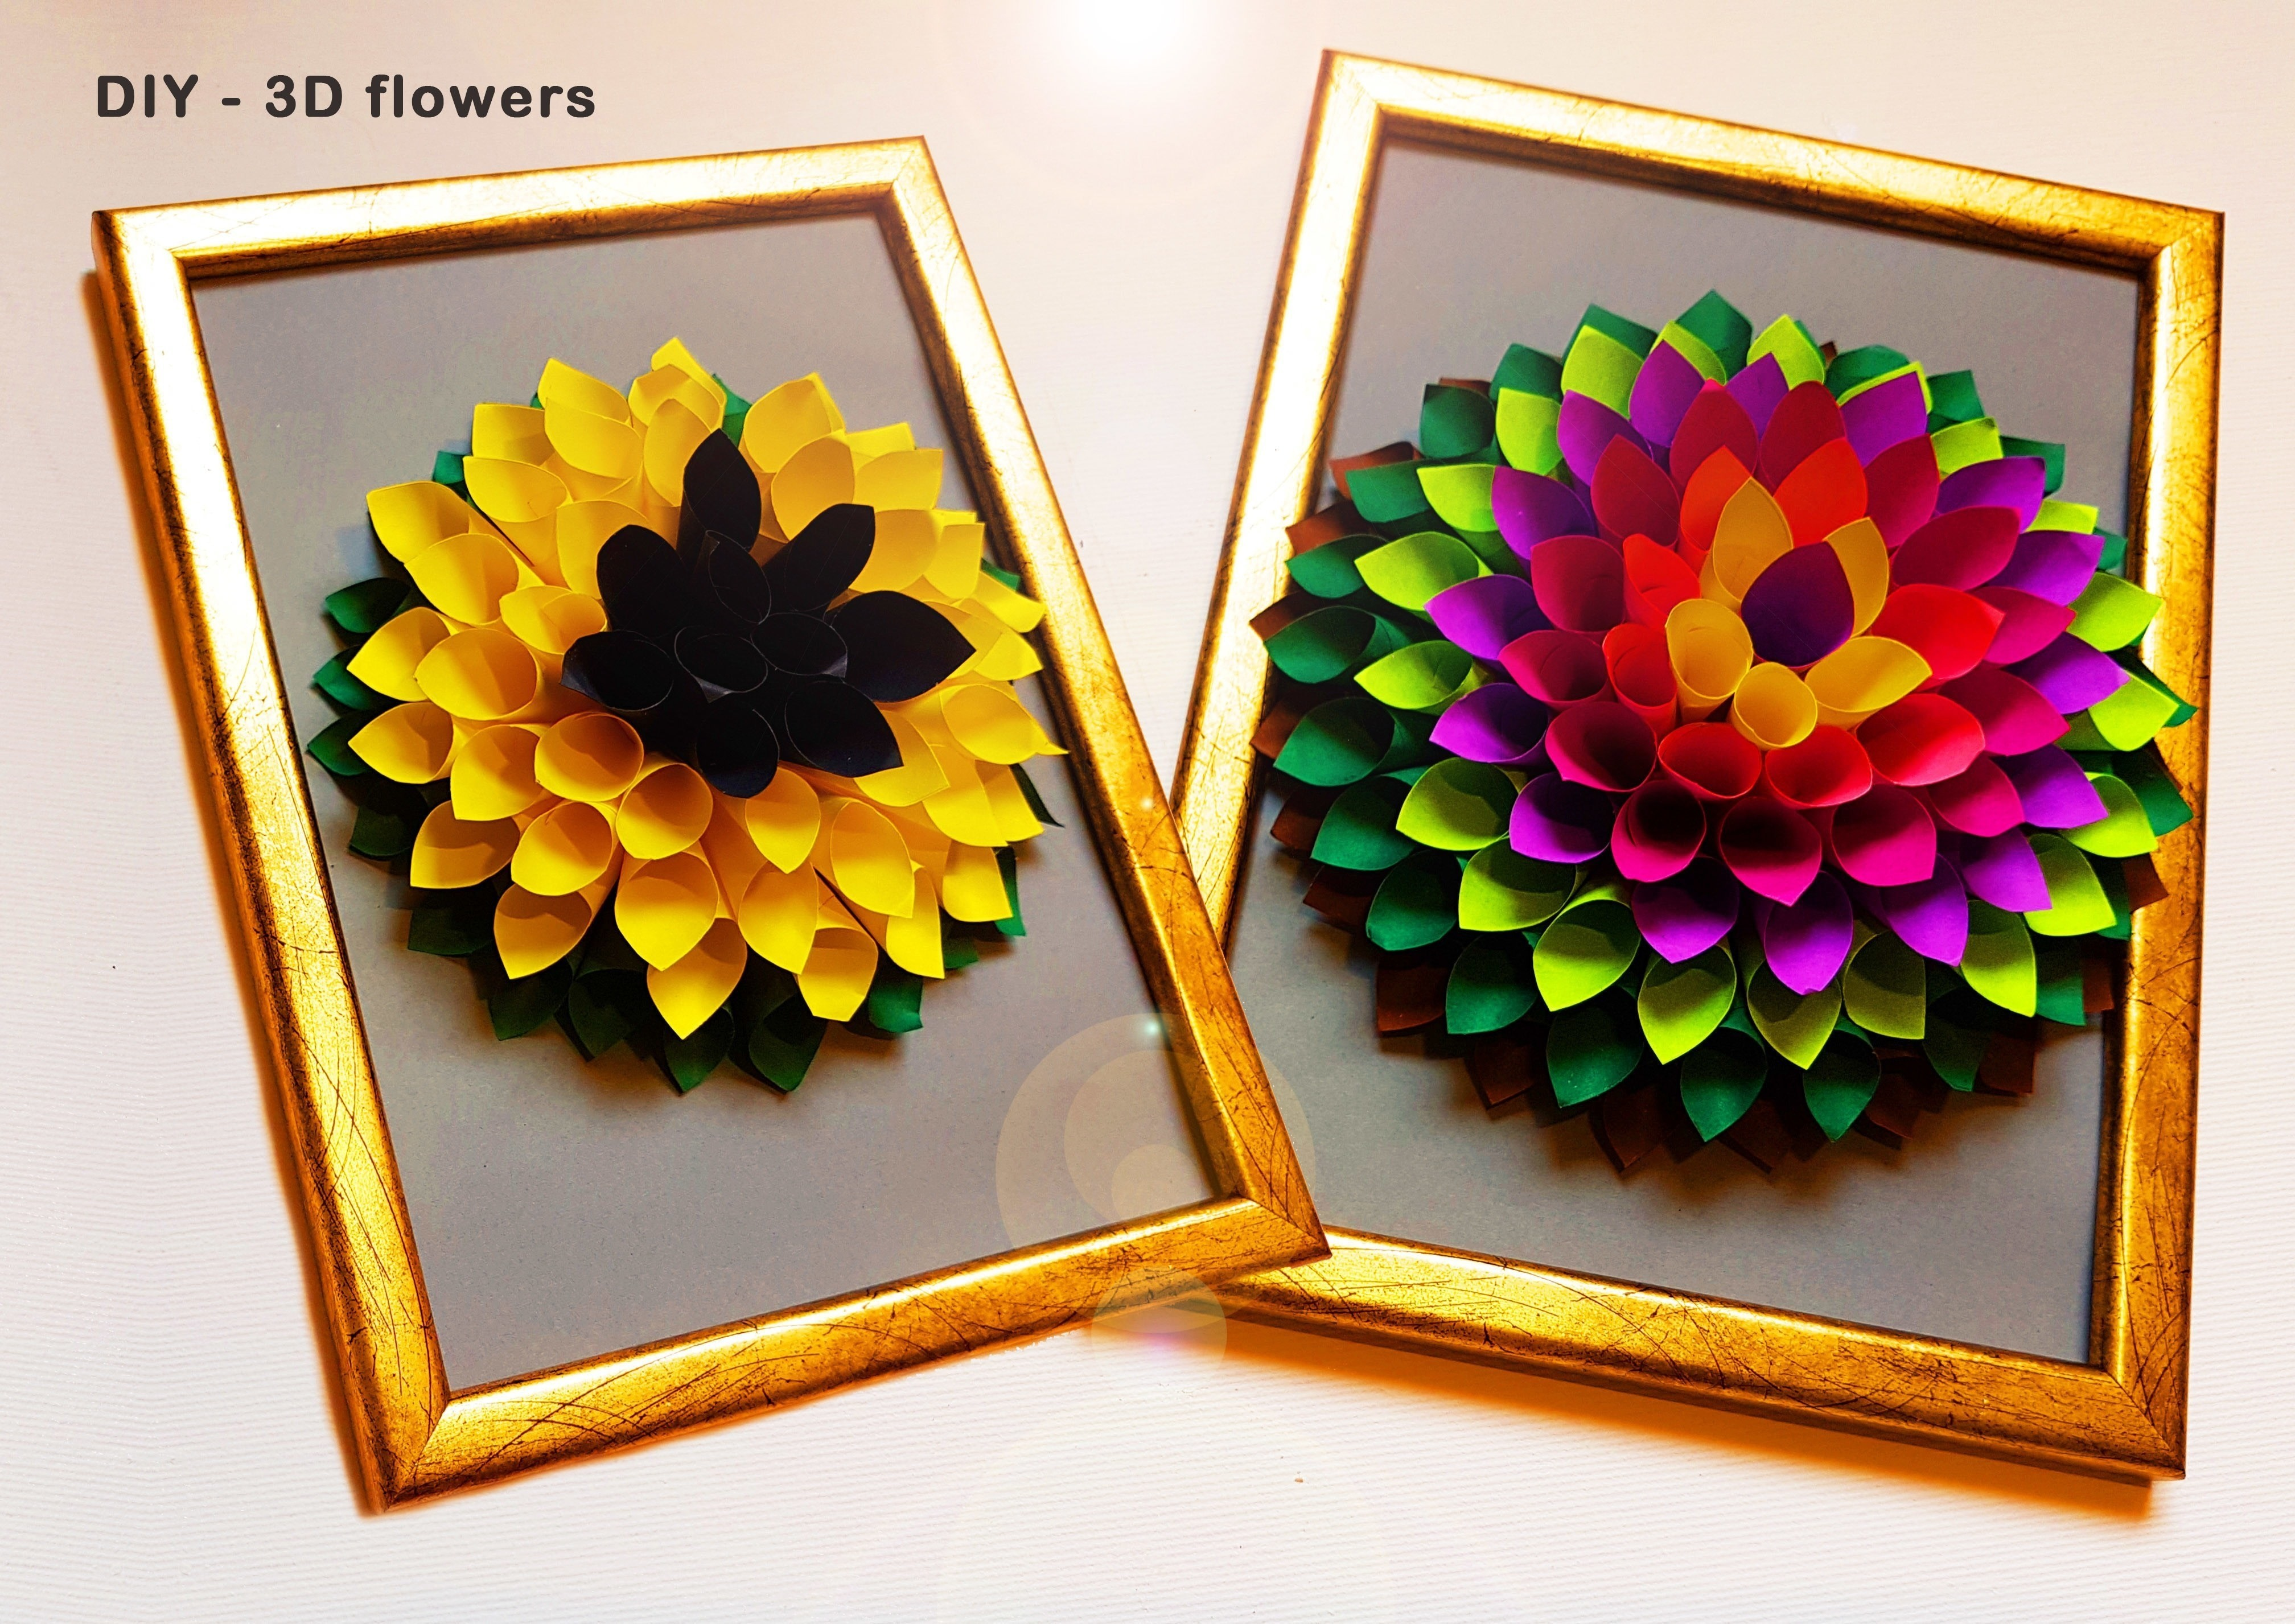 diy 3 d flower gift decor how to make a techniques papercraft on cut out keep. Black Bedroom Furniture Sets. Home Design Ideas